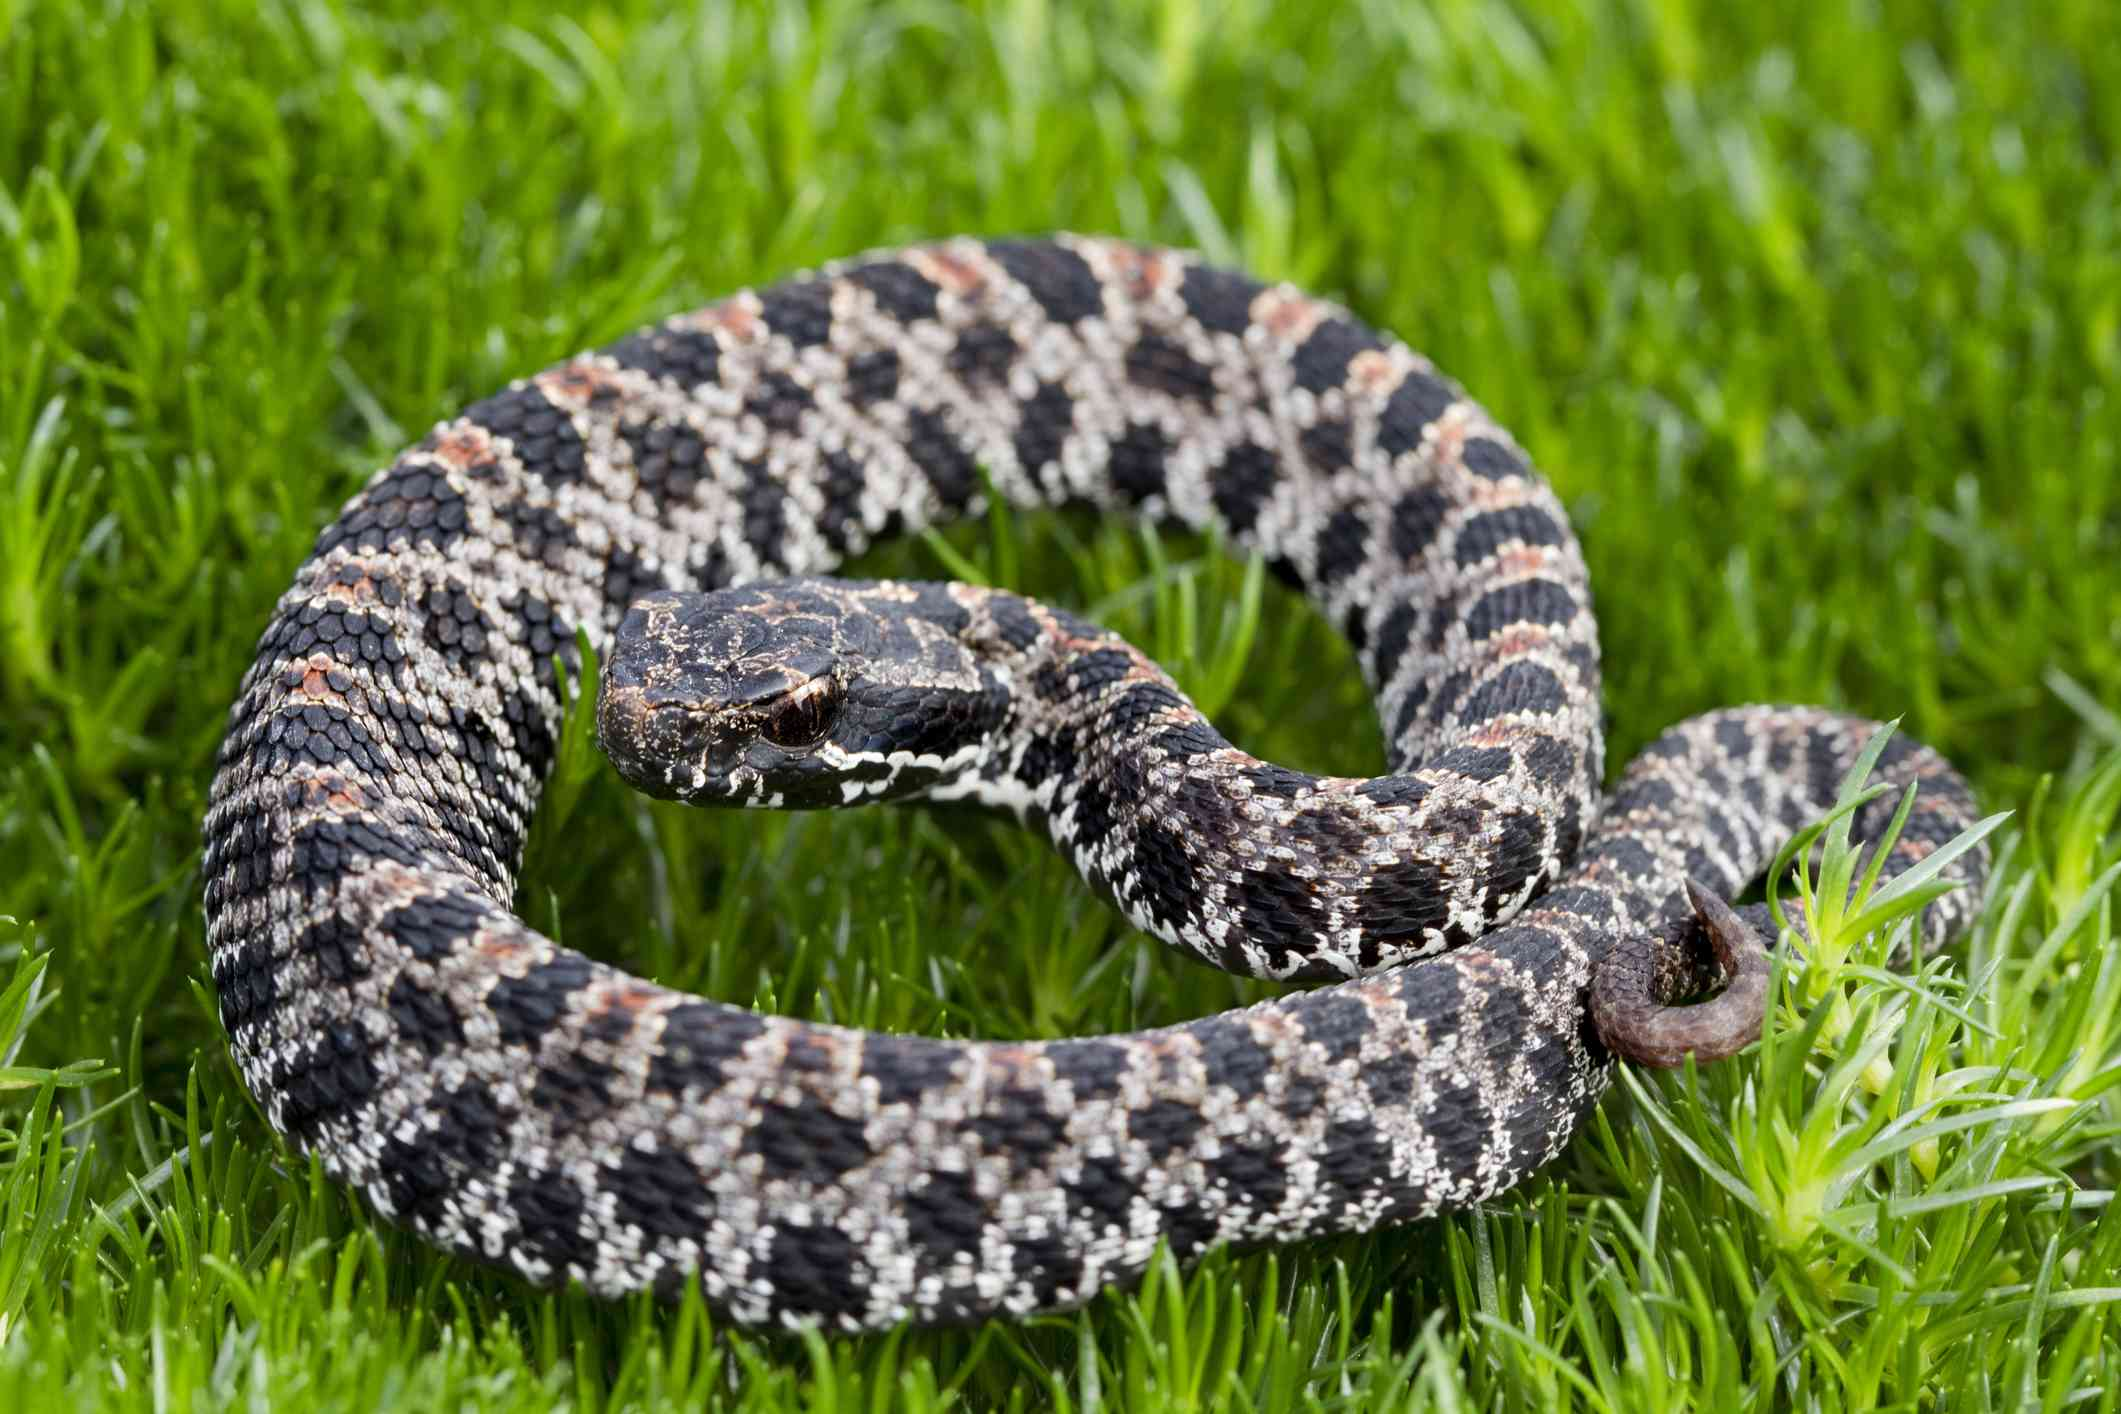 black and white dusky pygmy rattlesnake sits in green grass